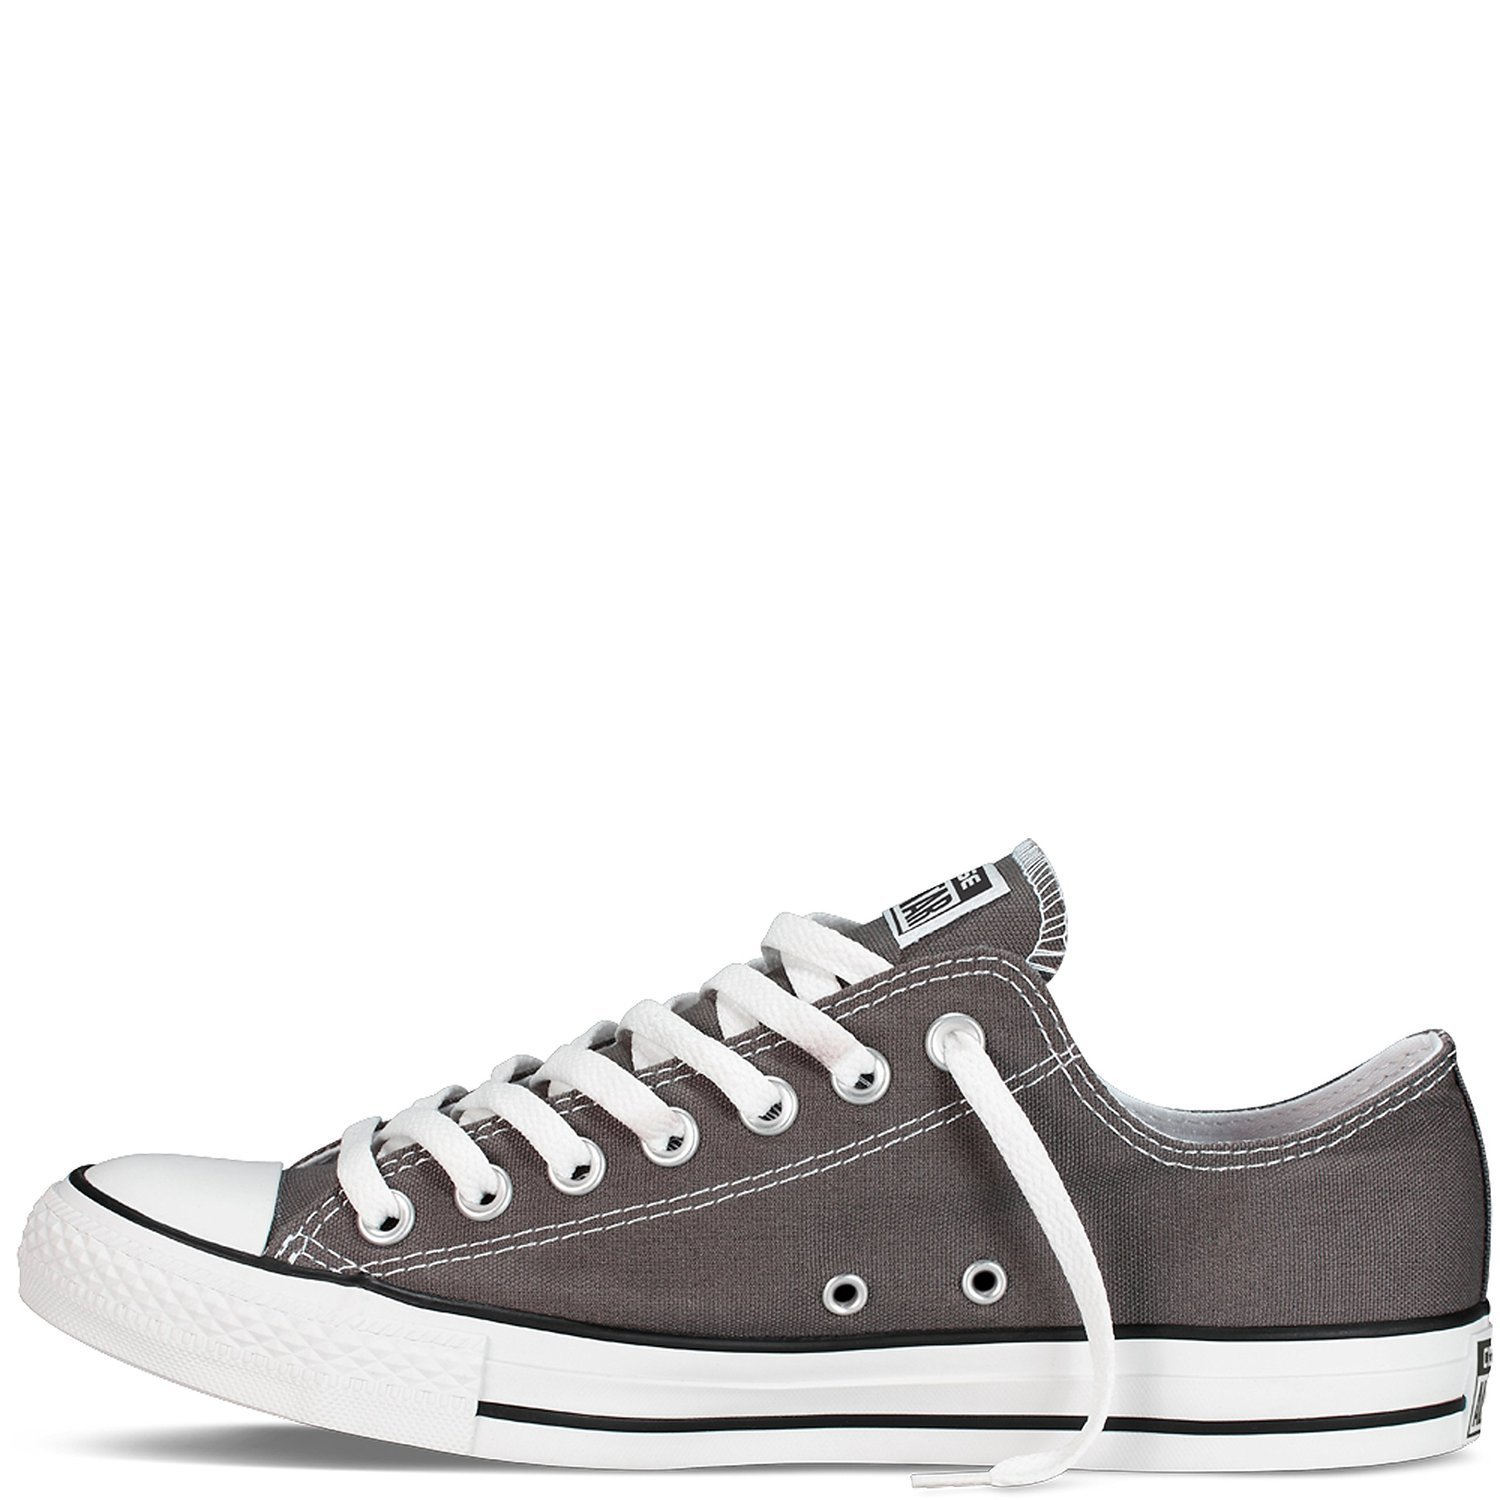 Converse Chuck Taylor All Star Slip Sneaker Gray 1X228, Size 4 Mens, 6 Womens by Converse (Image #2)